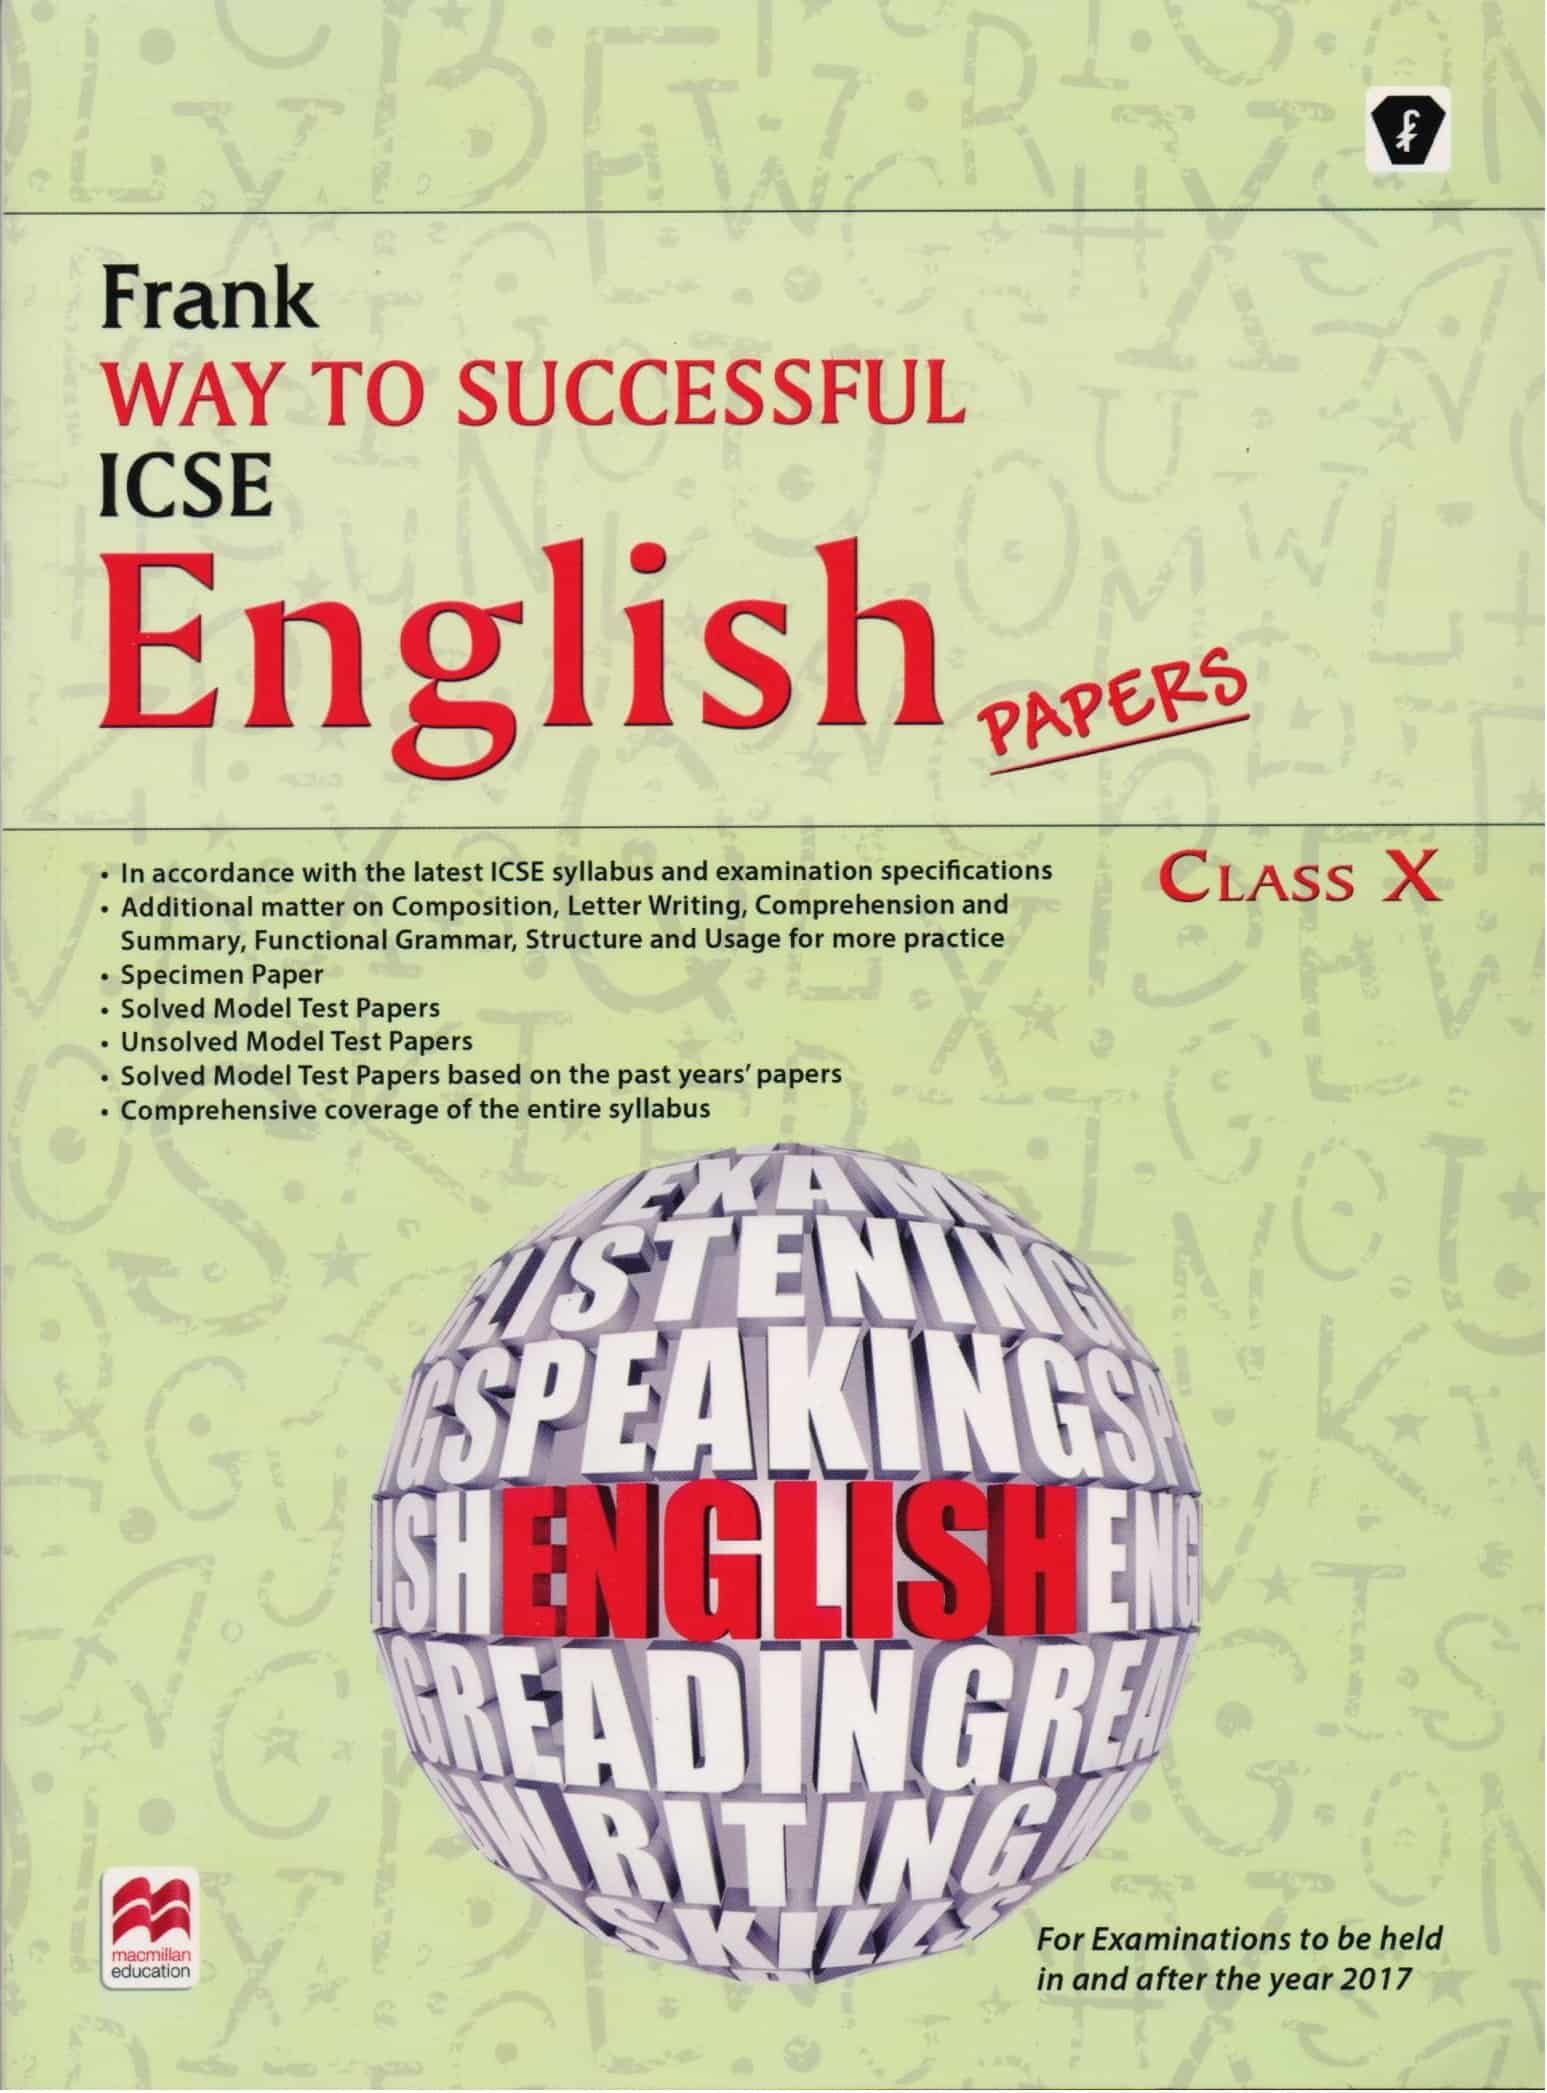 Frank Way To Successful Icse English Papers Class 10 Education